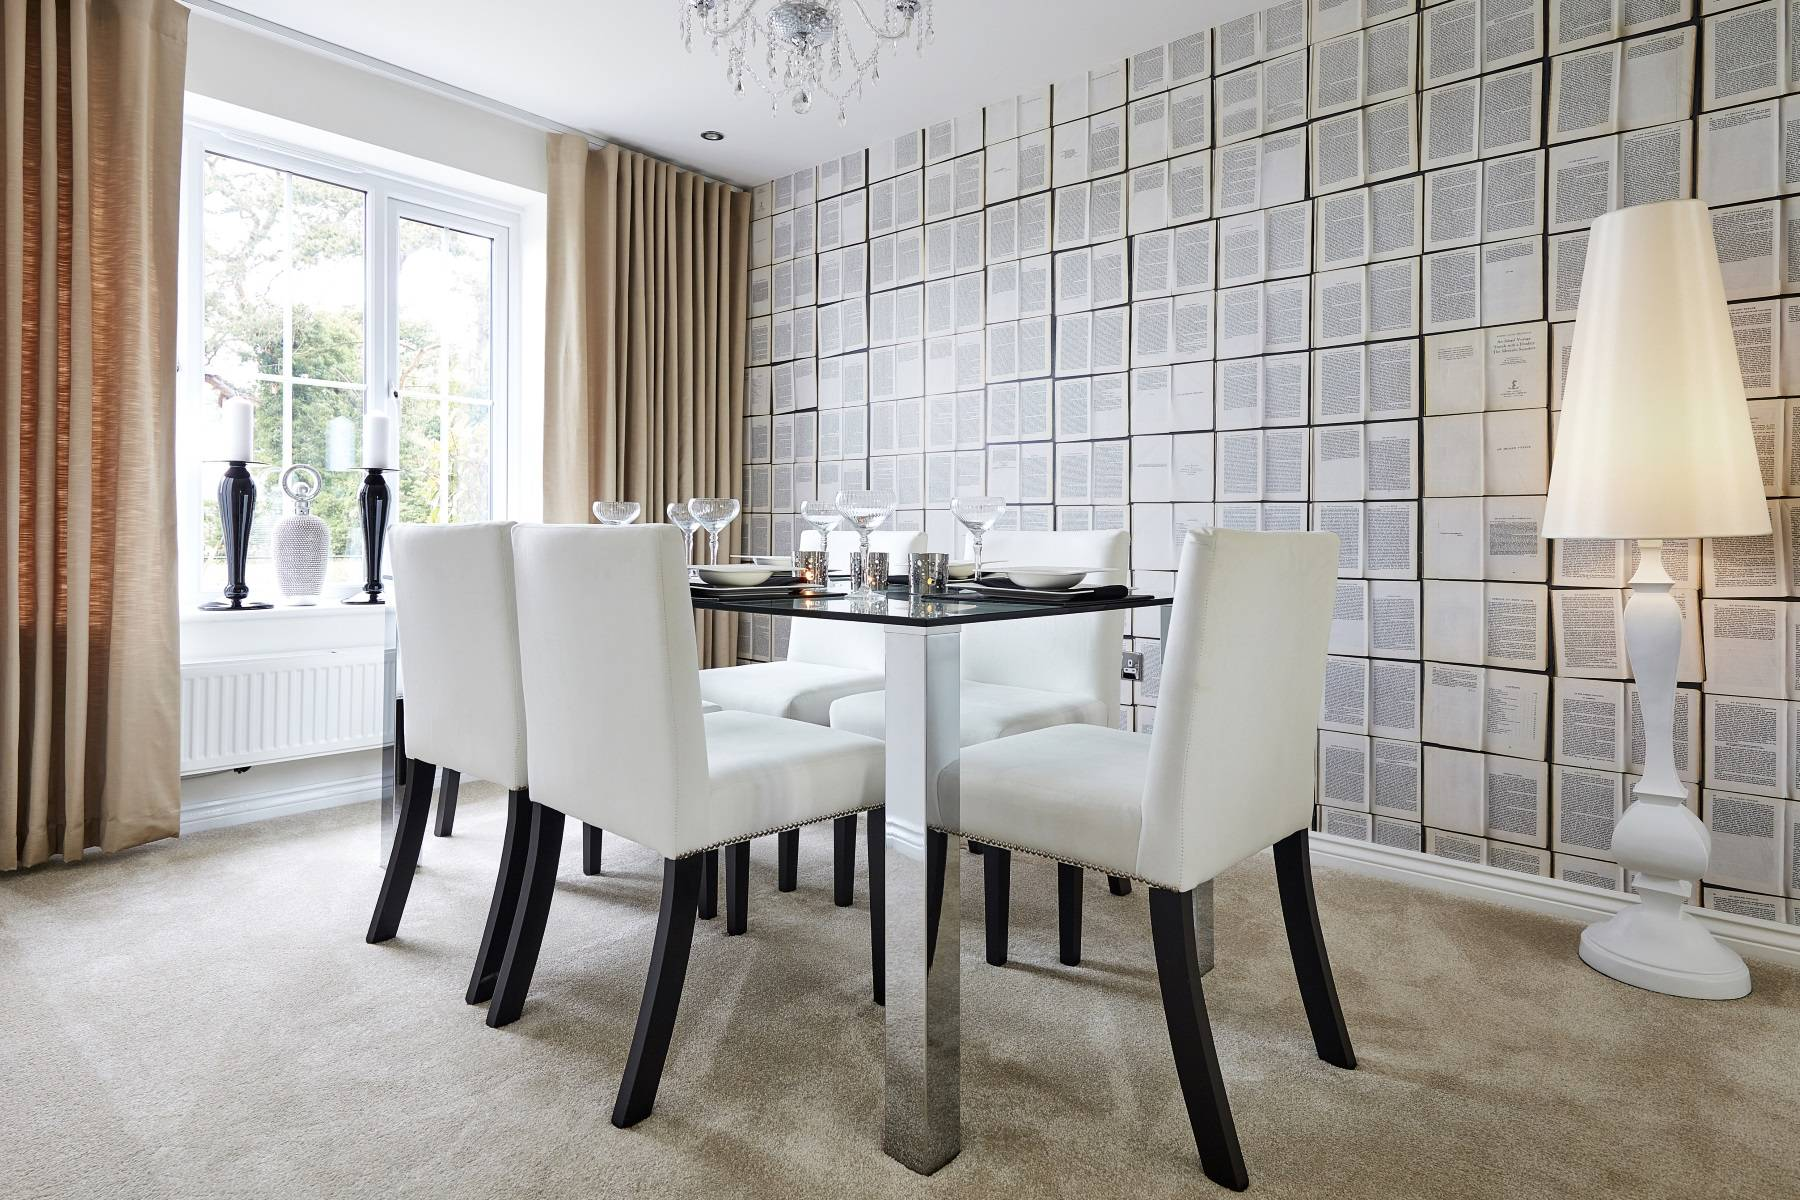 TW Exeter - Plumb Park - Dorchester example dining room